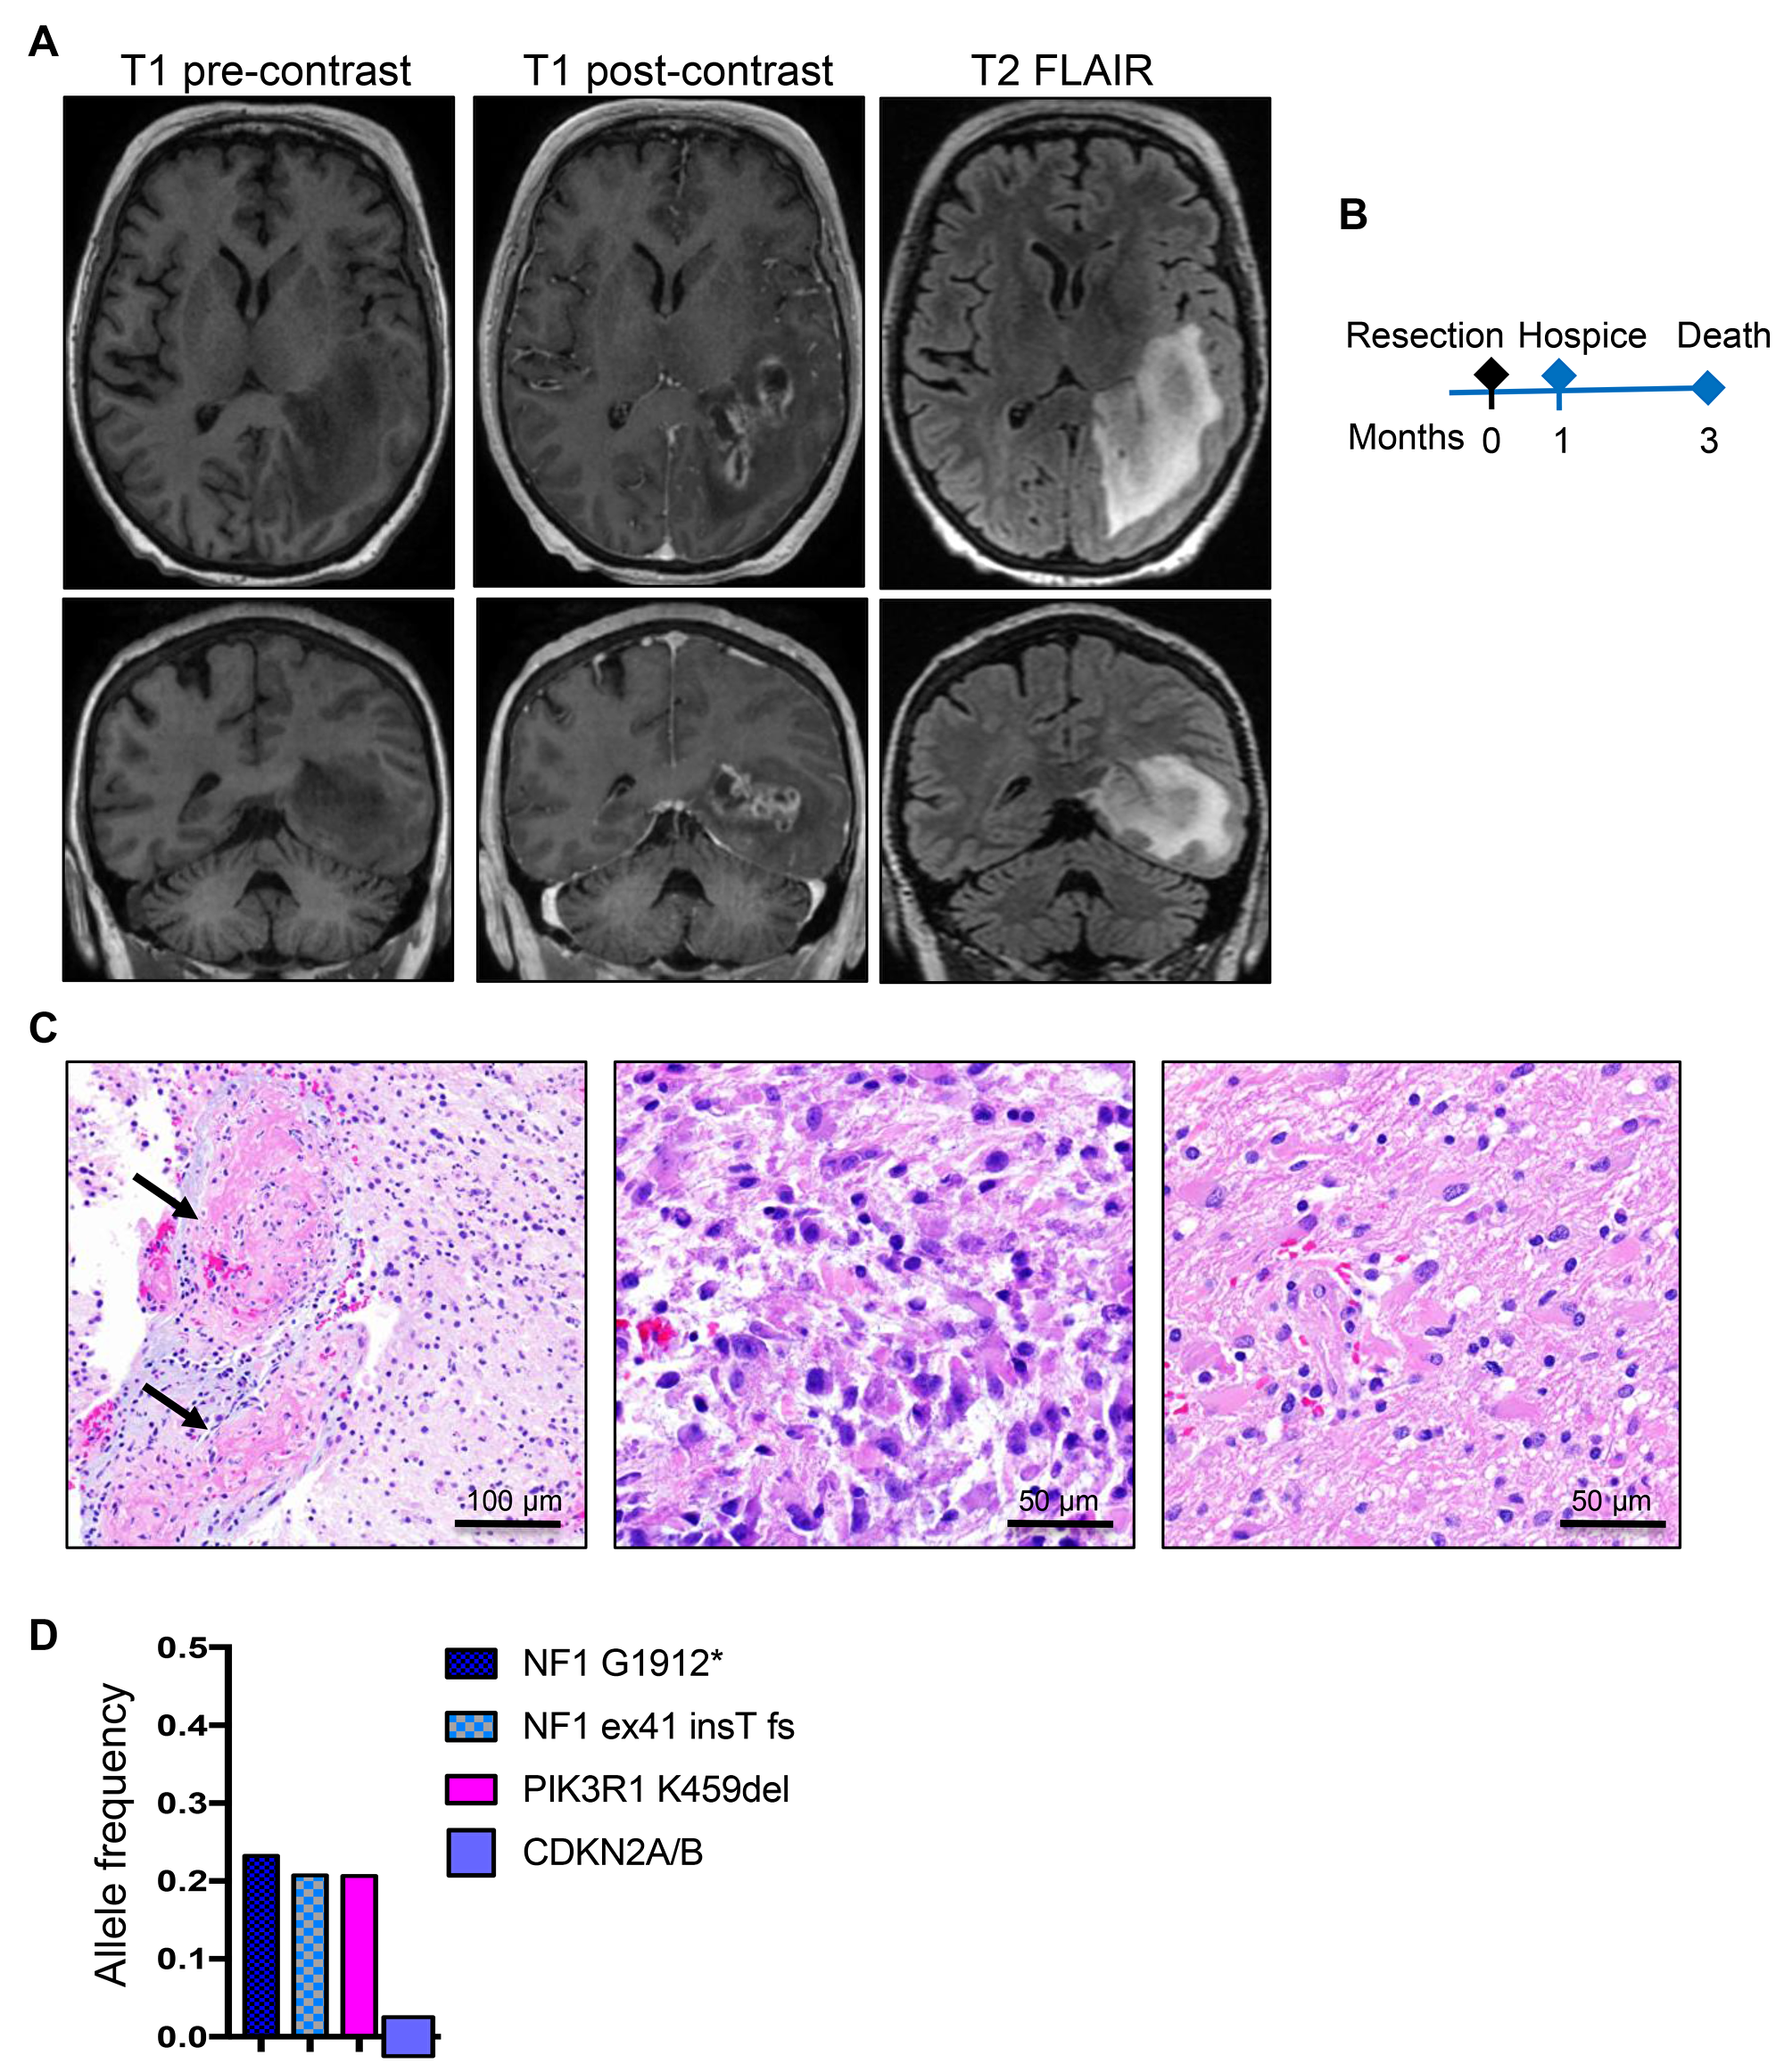 Patient 2: Aggressive periventricular glioblastoma with NF1 mutations and 3-month survival.